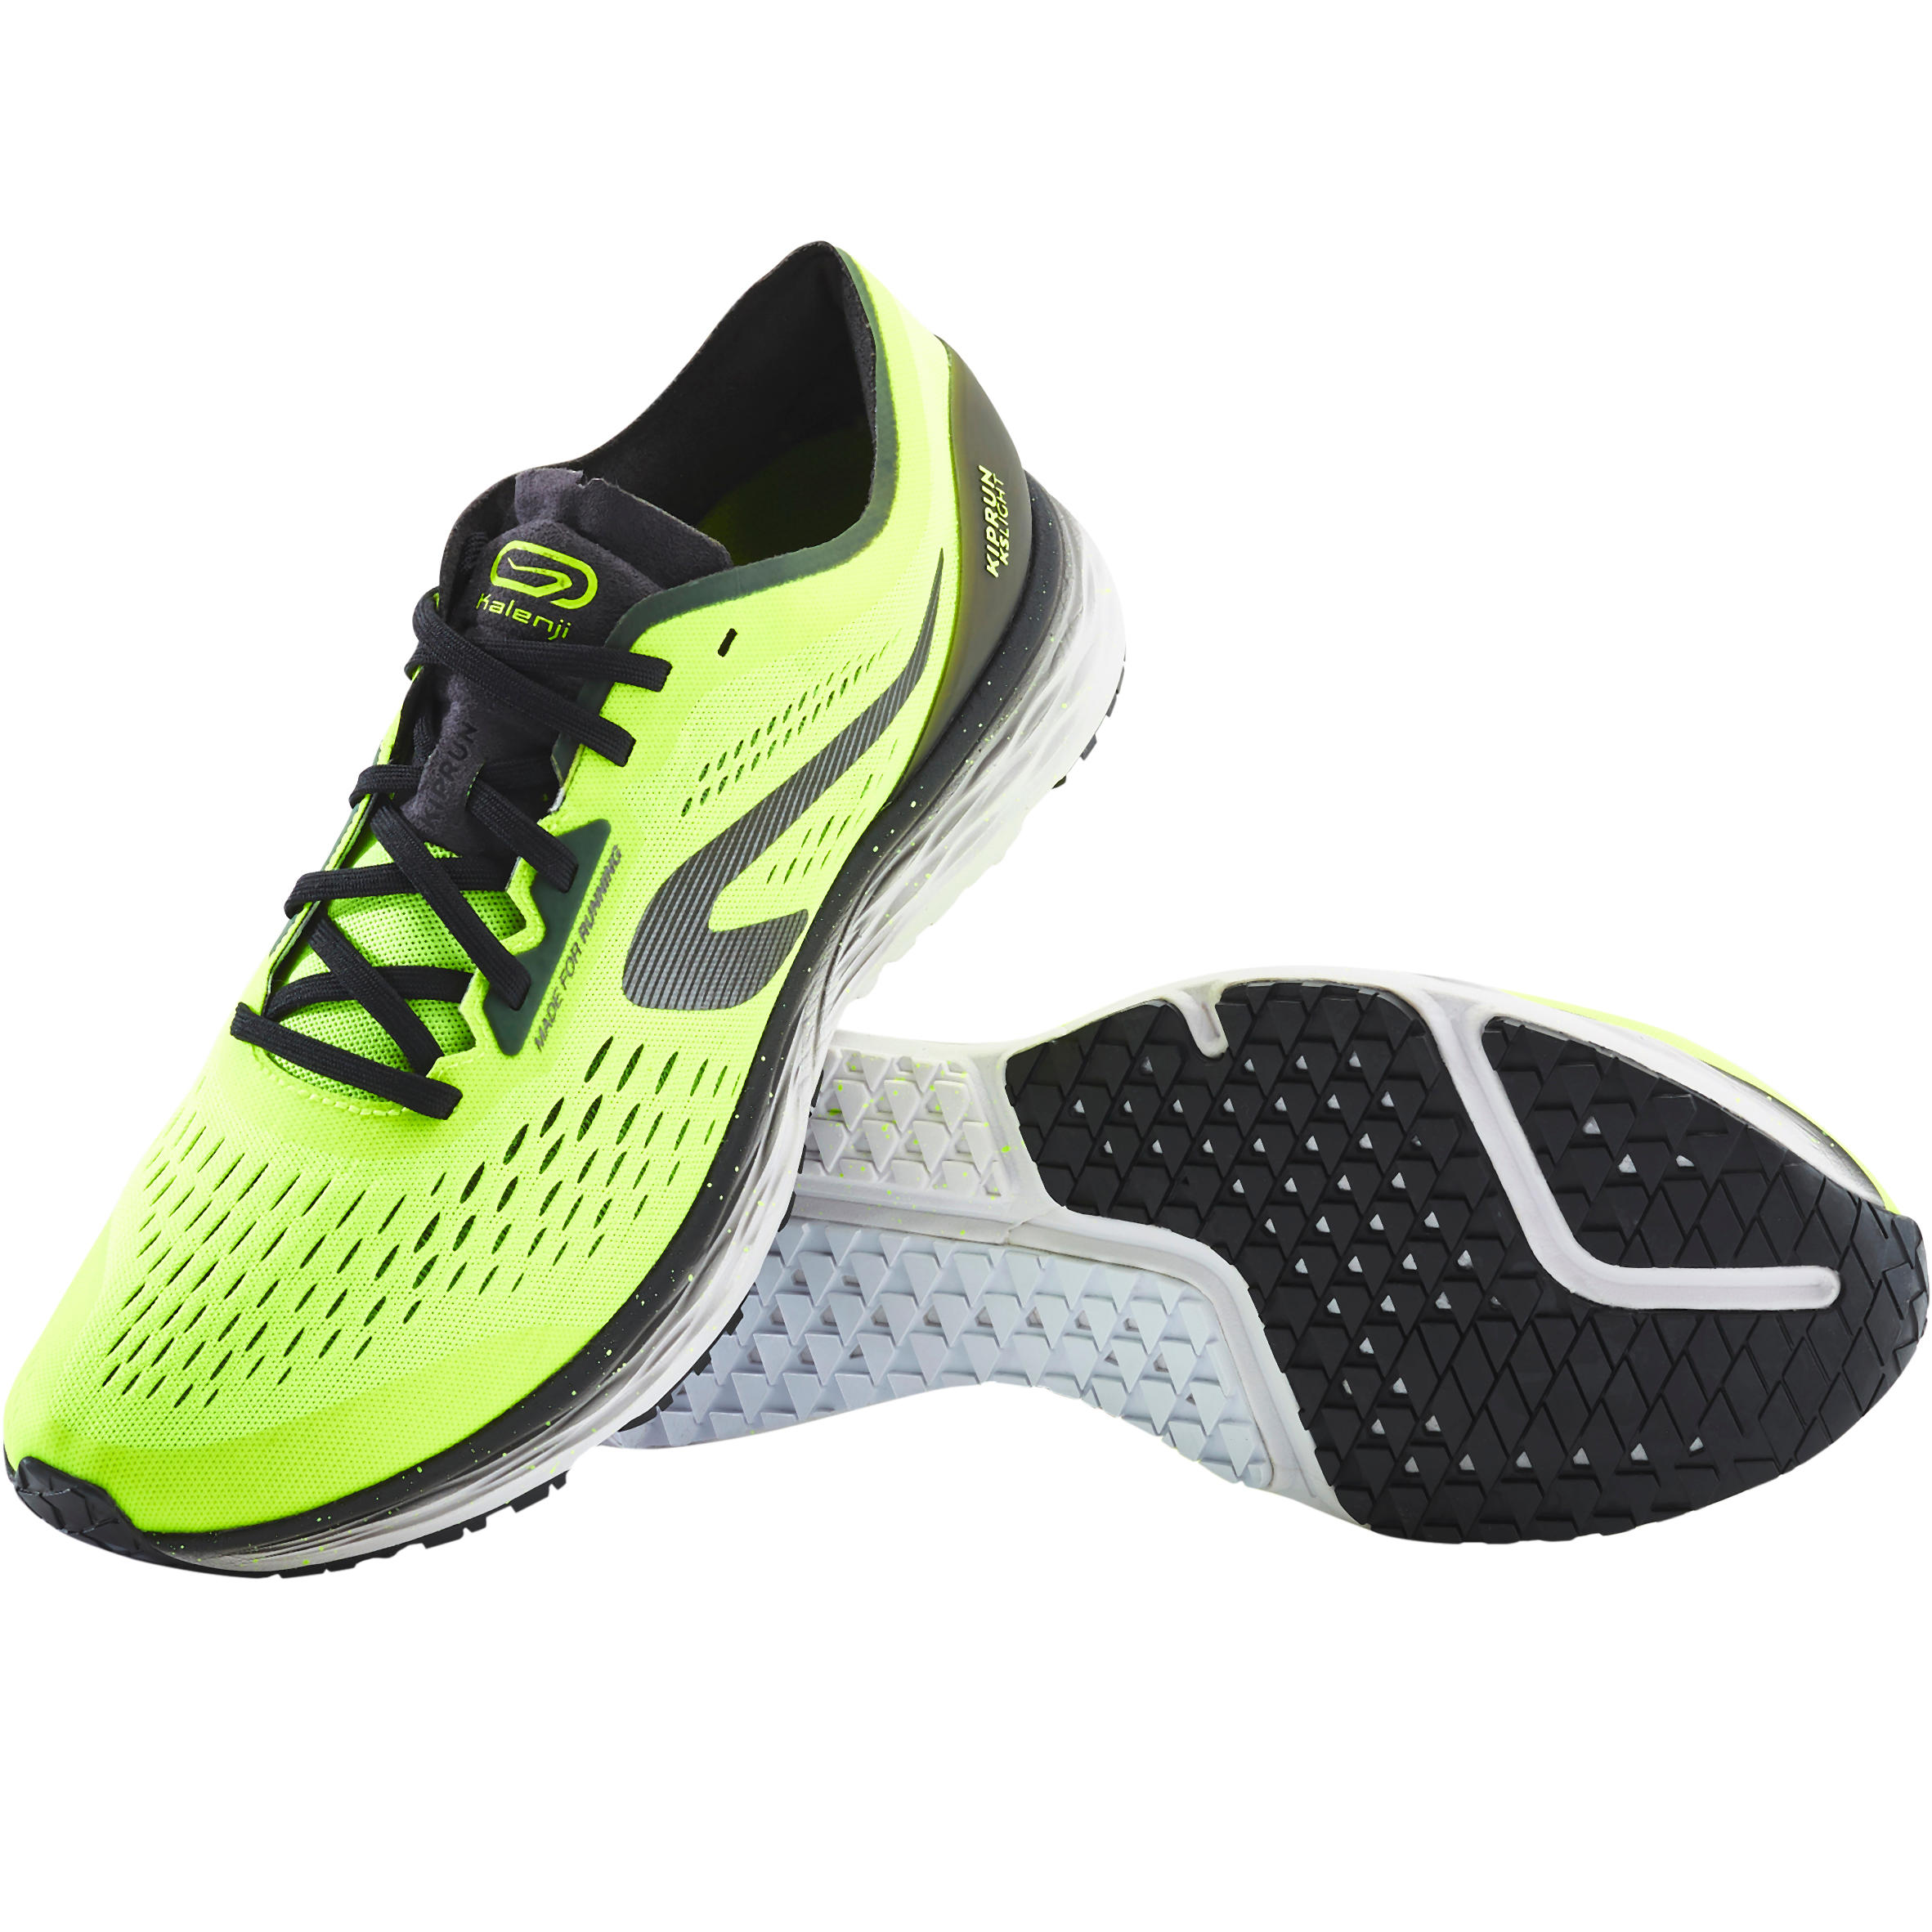 Kalenji Eliorun Running Shoes Review